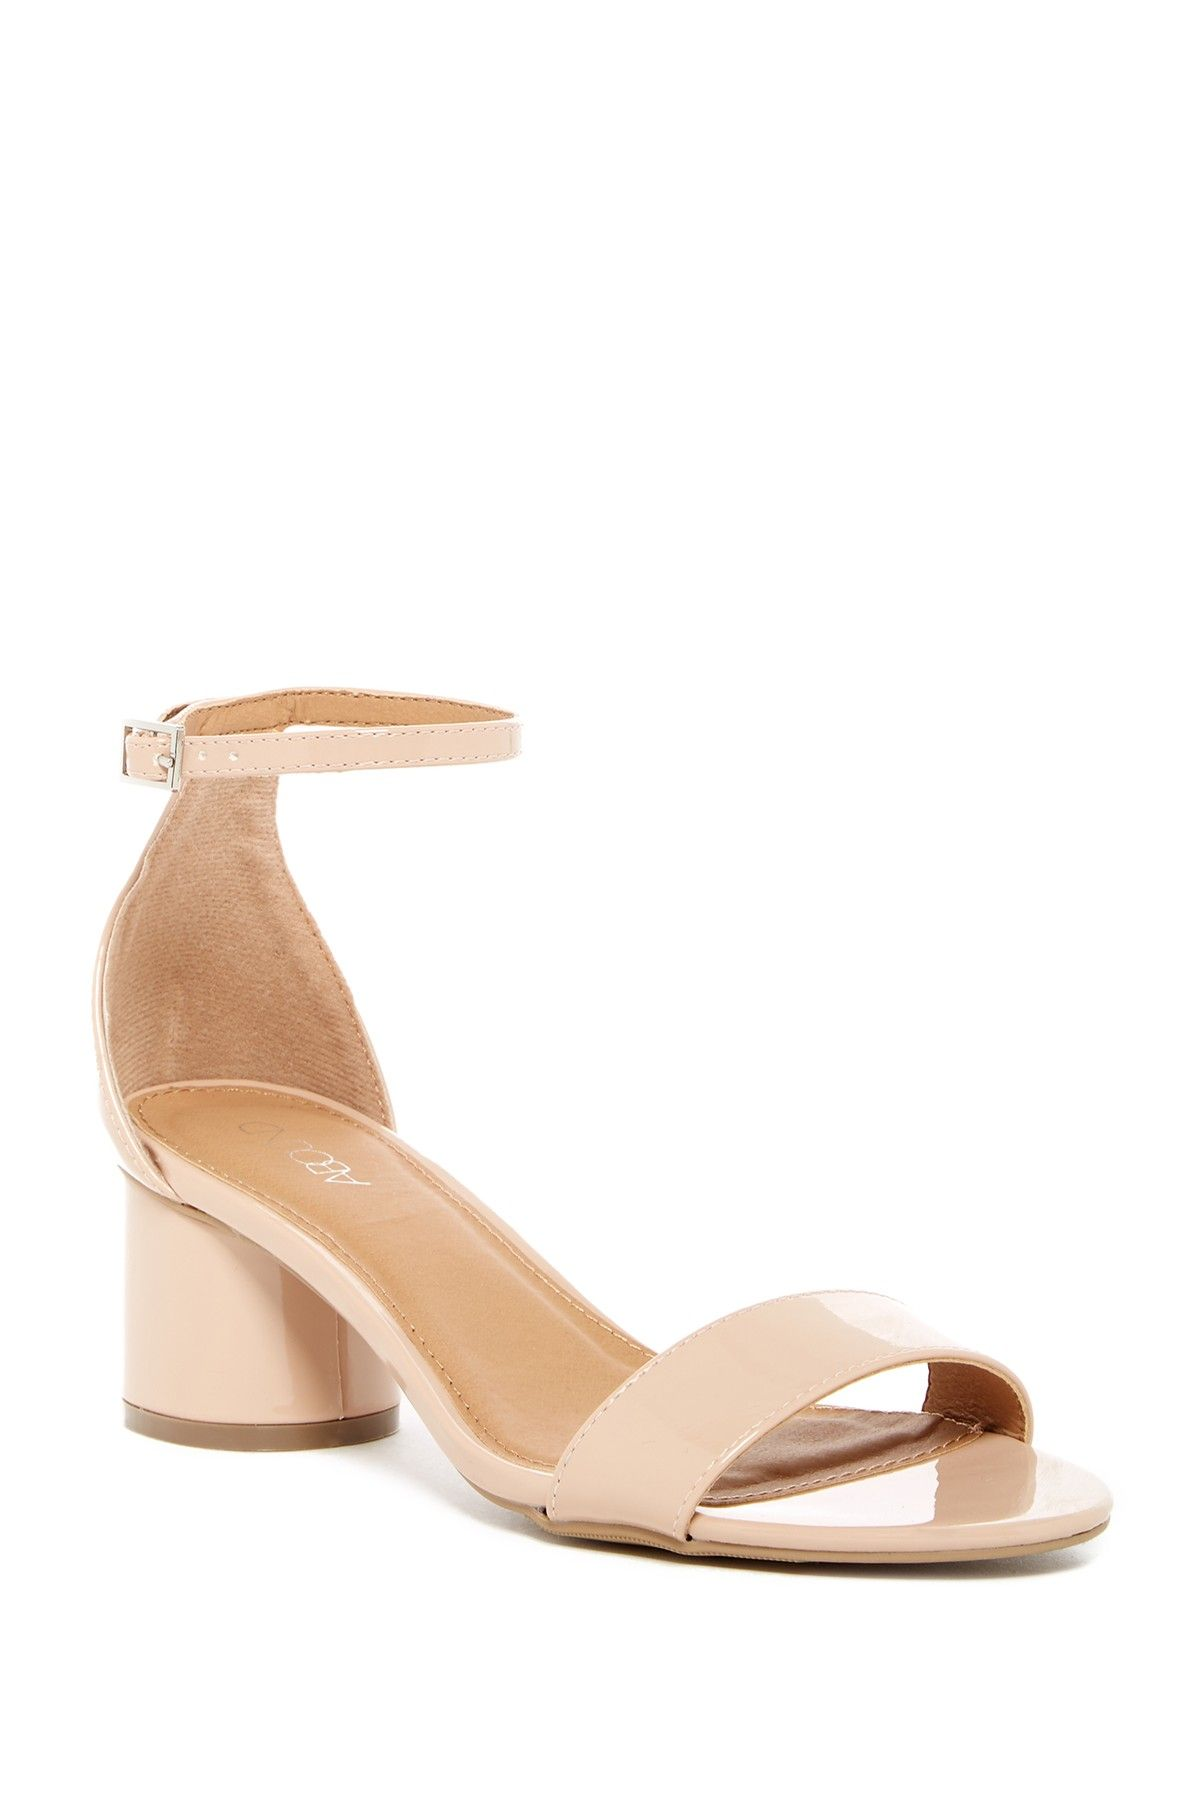 45205431a Emina Rounded Block Heel Sandal - Wide Width Availabale